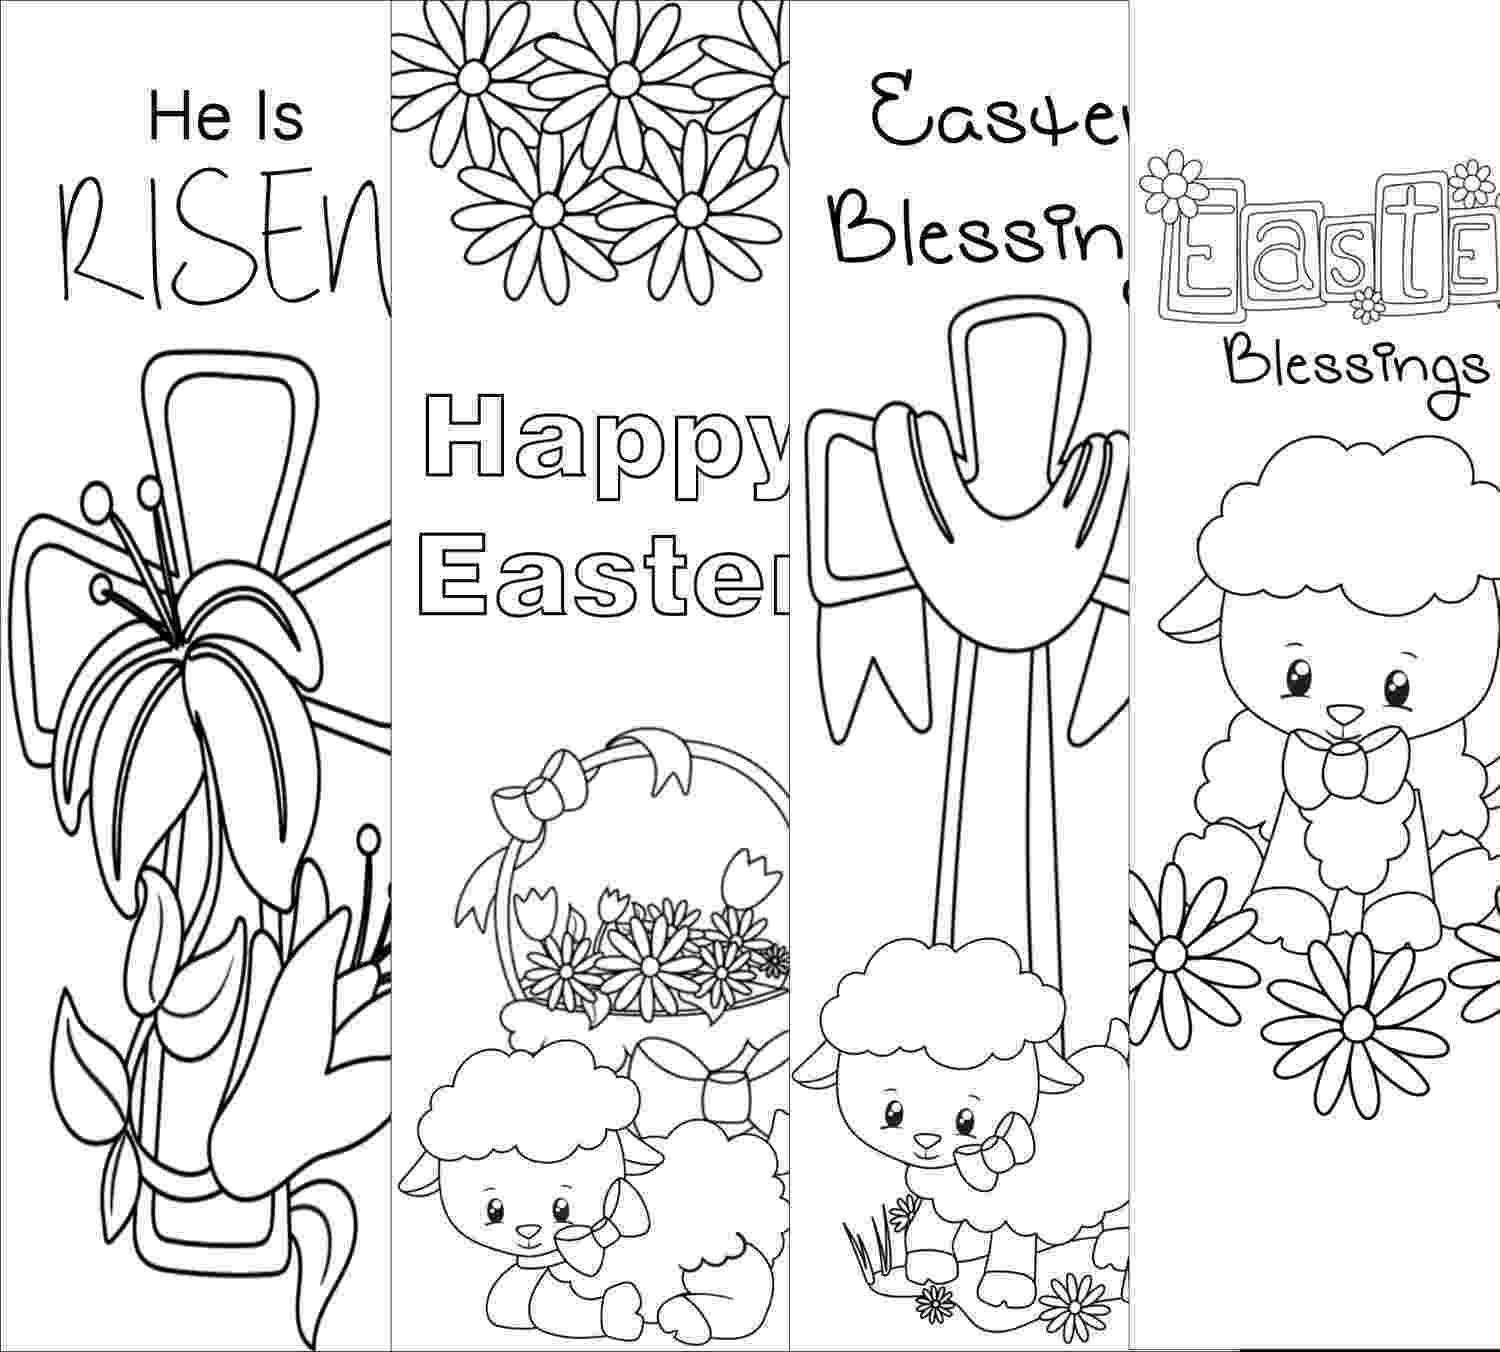 coloring easter bookmarks bookmark printable images gallery category page 7 bookmarks coloring easter